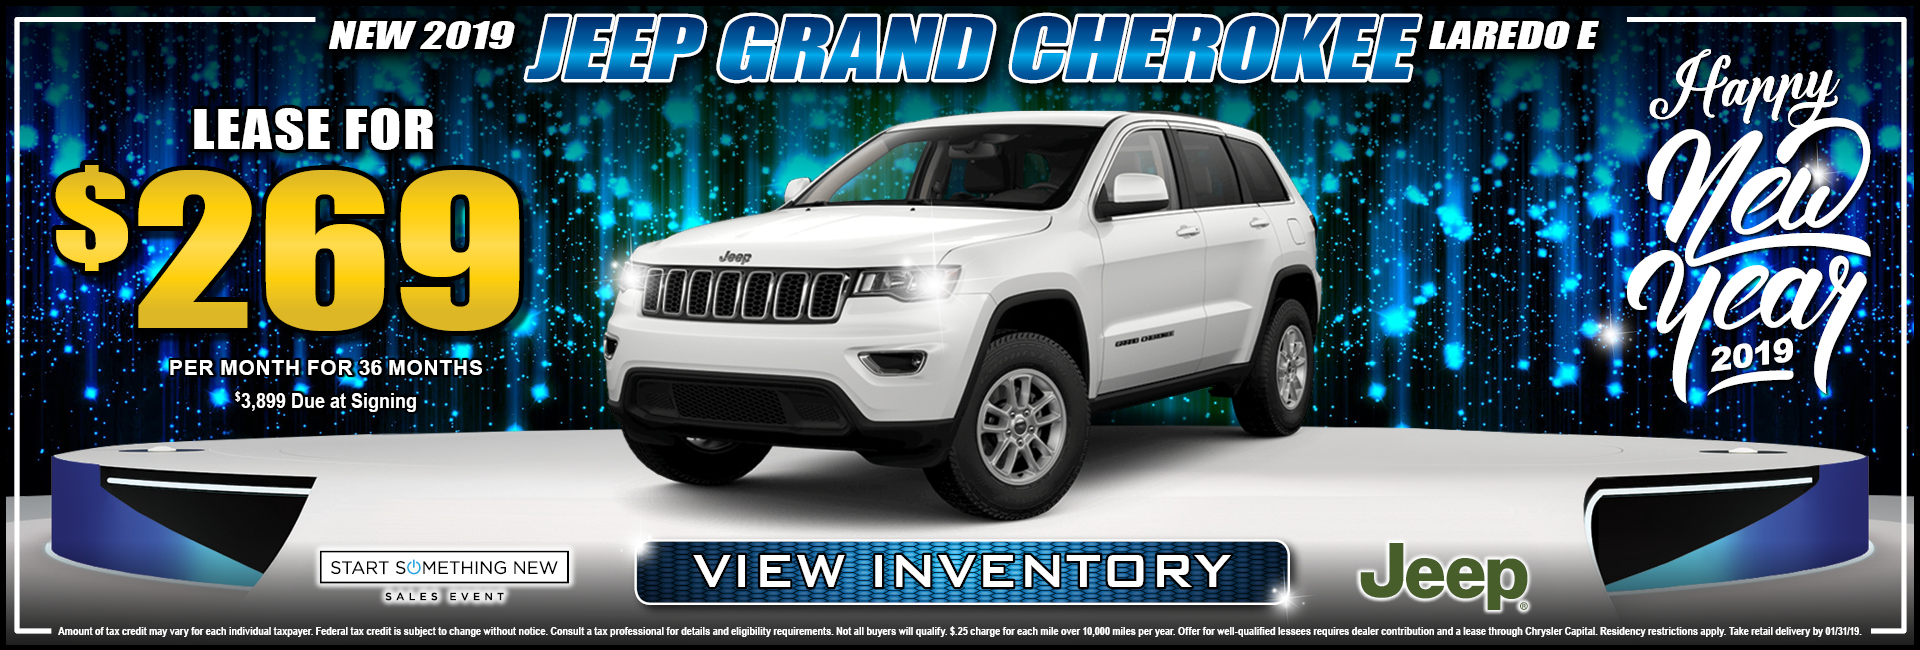 Jeep Grand Cherokee Laredo $269 Lease